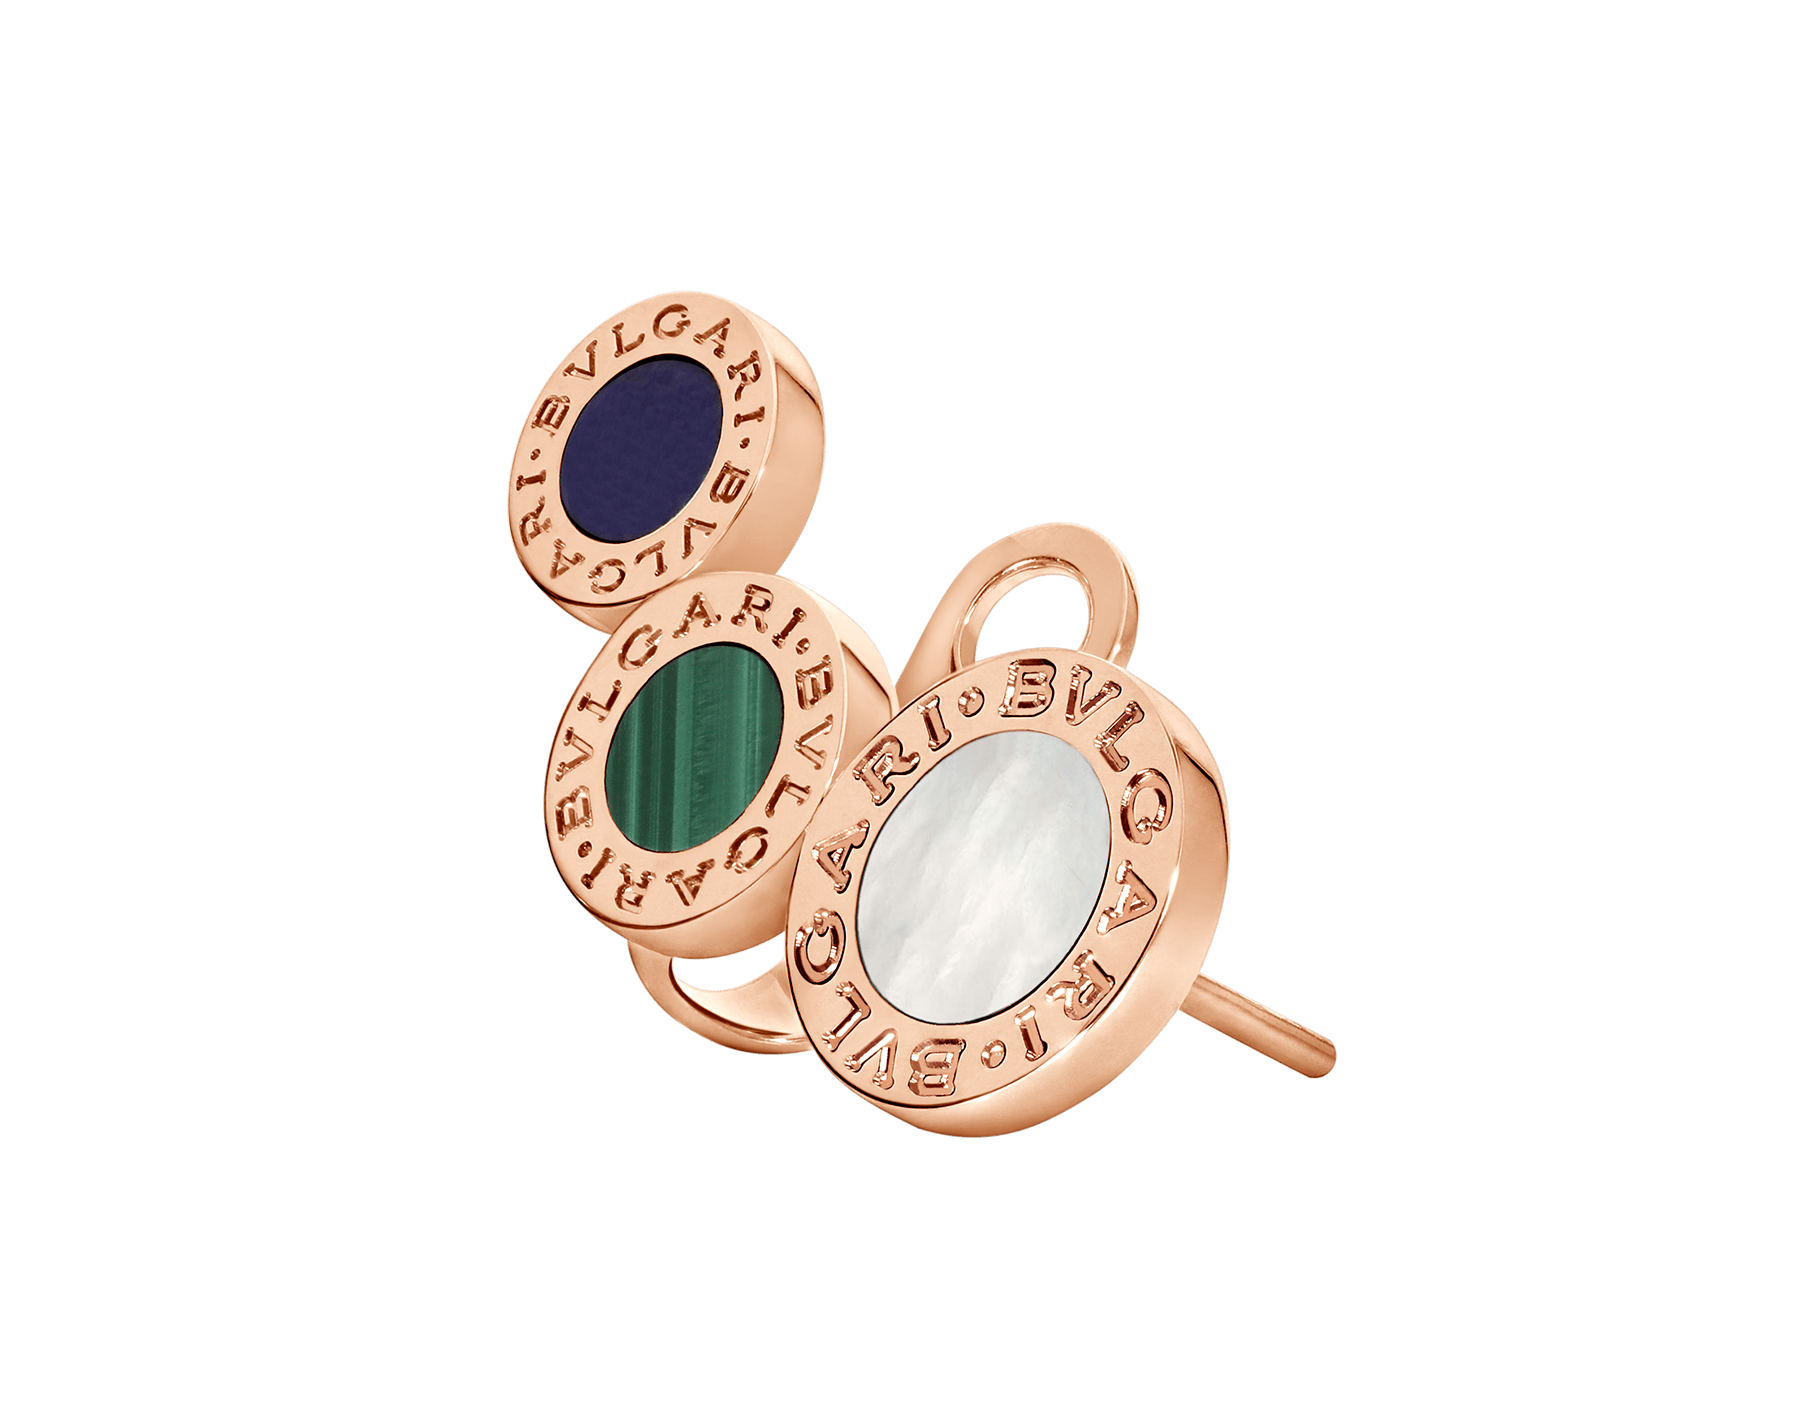 BVLGARI BVLGARI 18 kt rose gold single earring with sugilite, malachite and mother-of-pearl elements 356431 image 2